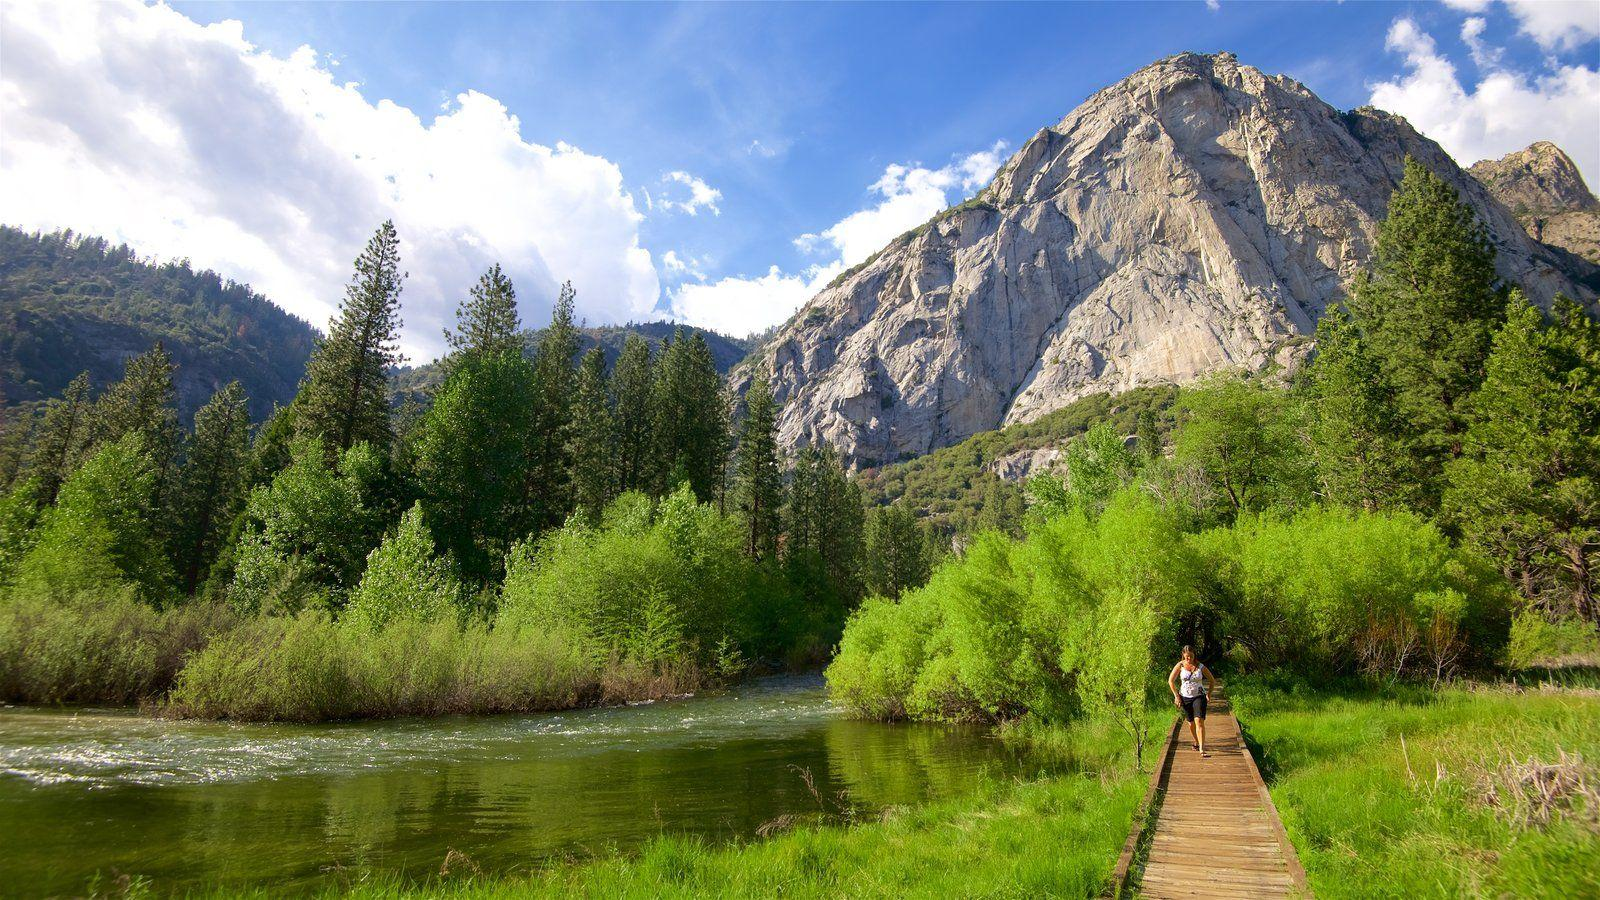 People Pictures: View Image of Sequoia and Kings Canyon National